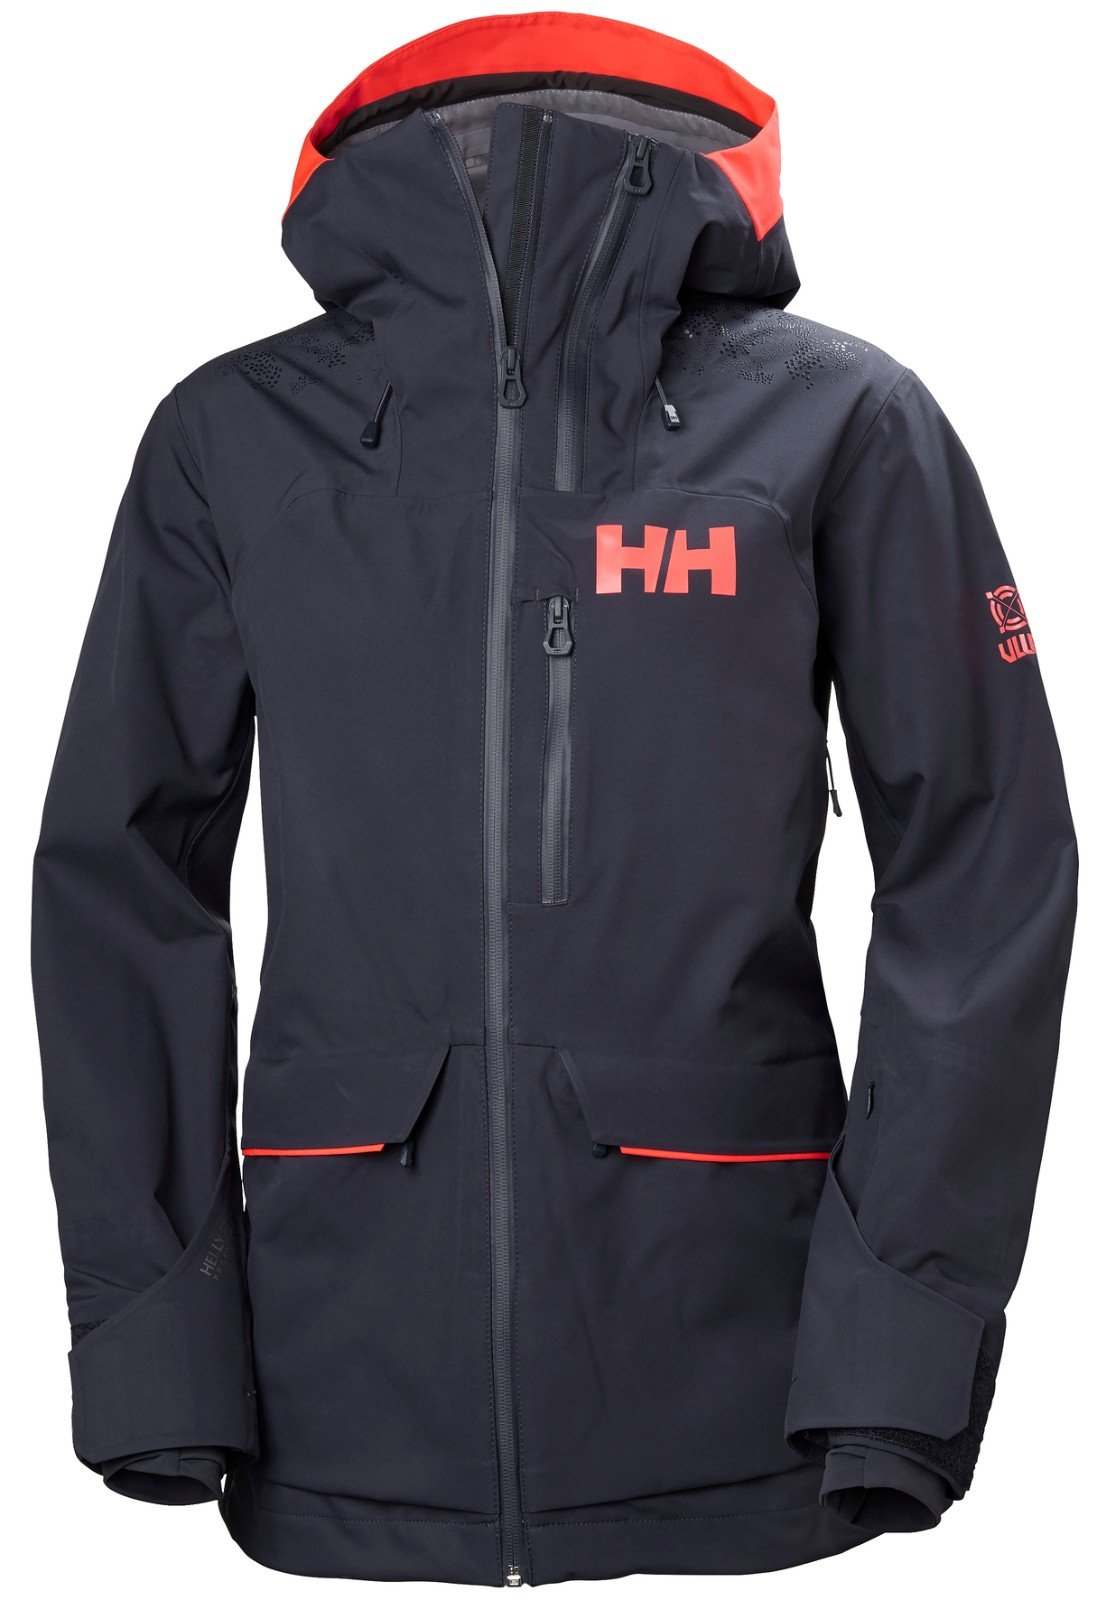 Helly Hansen Women's Aurora 2.0 Waterproof Shell Ski Jacket, Graphite Blue, Large by Helly Hansen (Image #3)